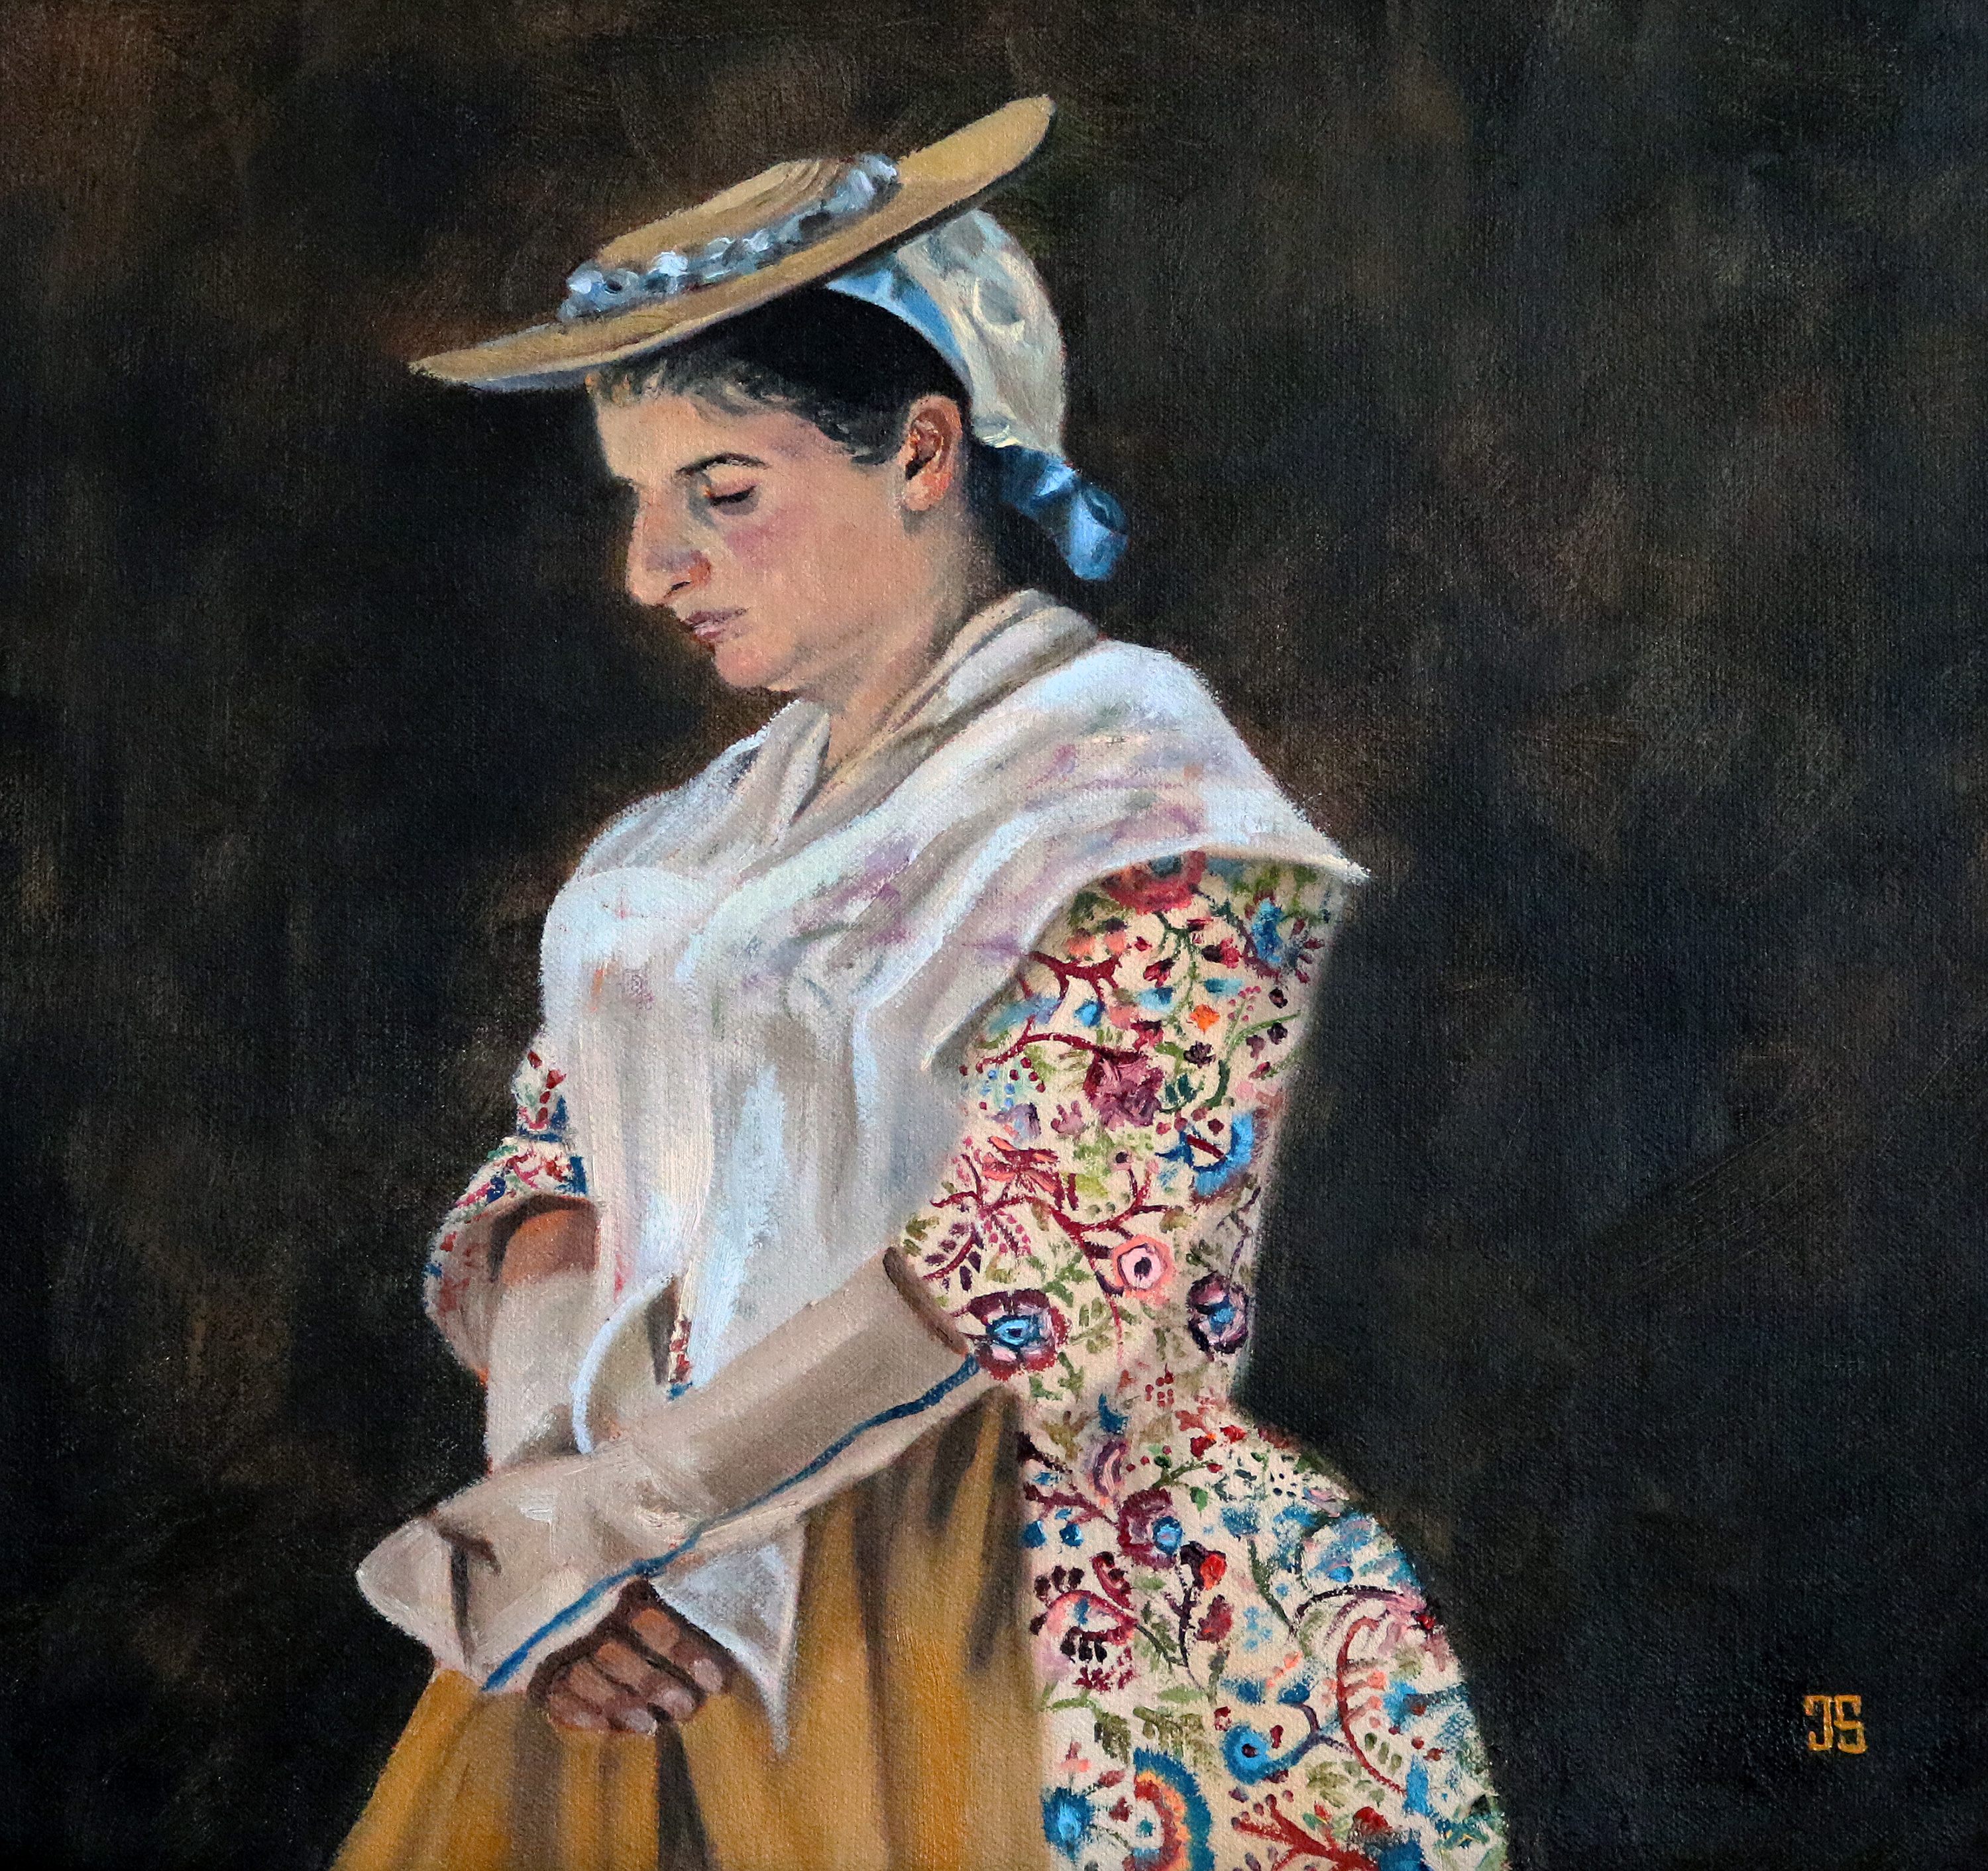 Oil painting of The Matriarch The Colonists by Jeffrey Dale Starr